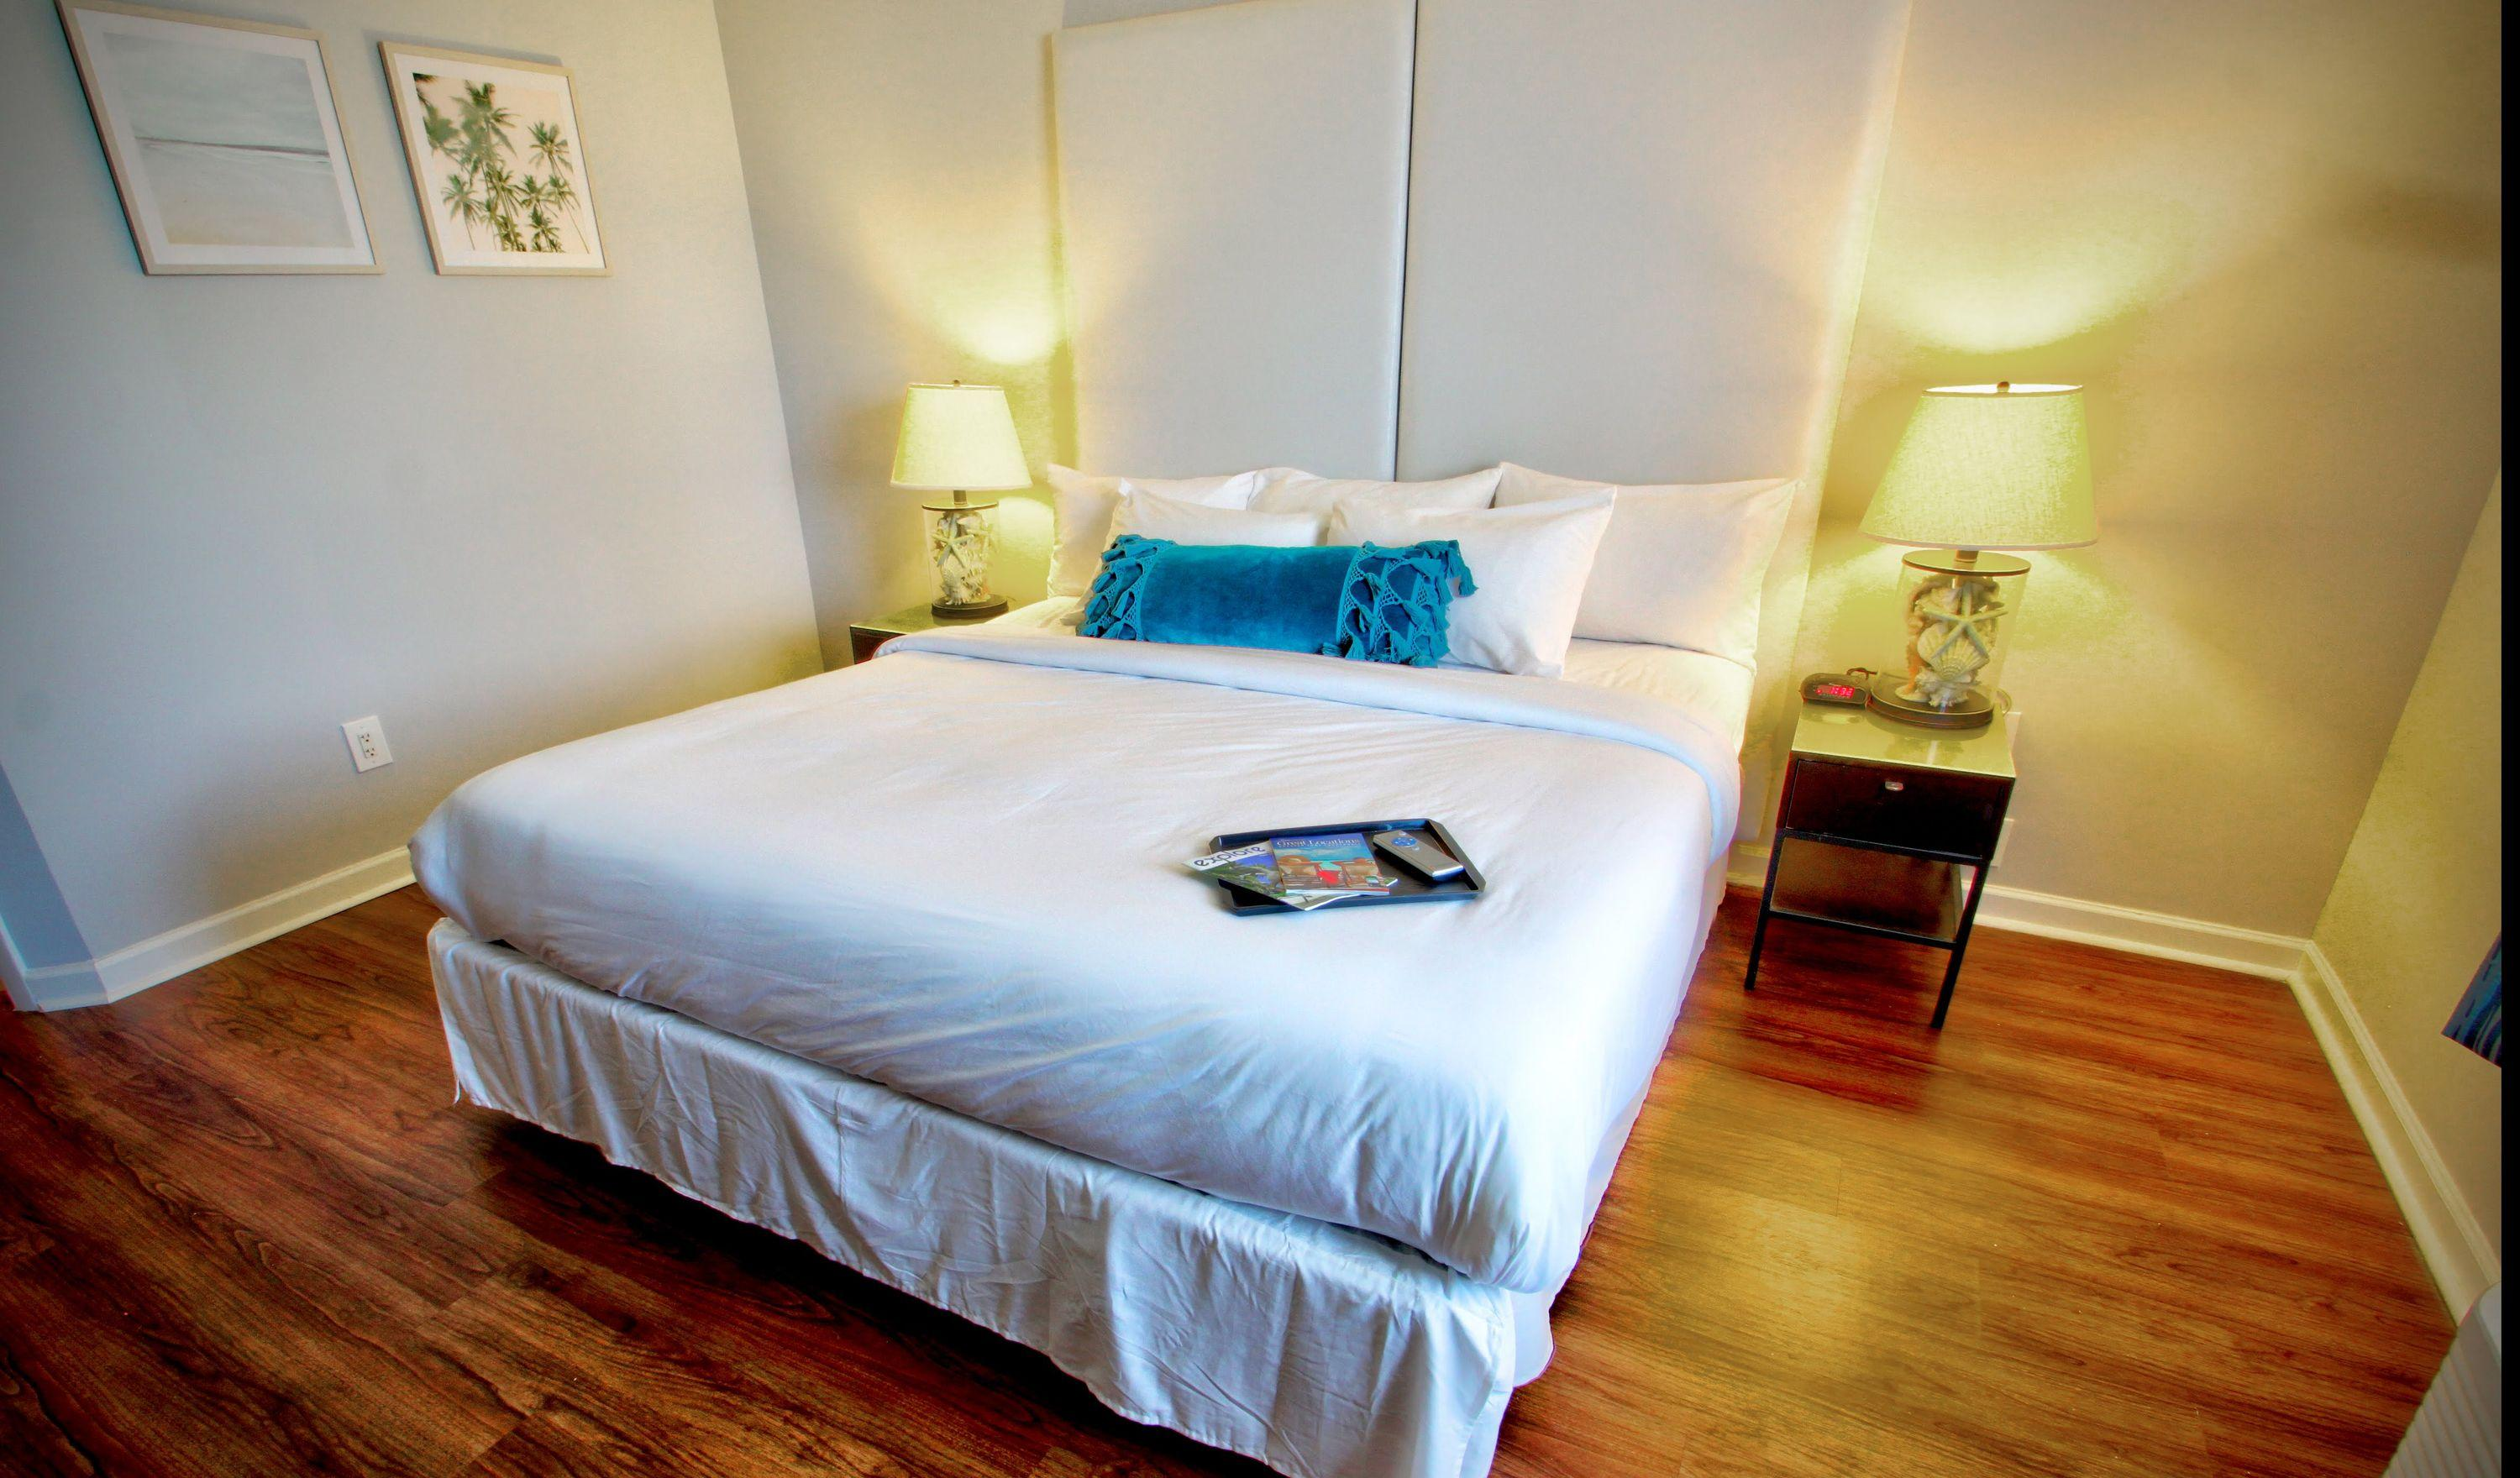 Fort Lauderdale Grand Hotel Fort Lauderdale Fl United States Compare Deals